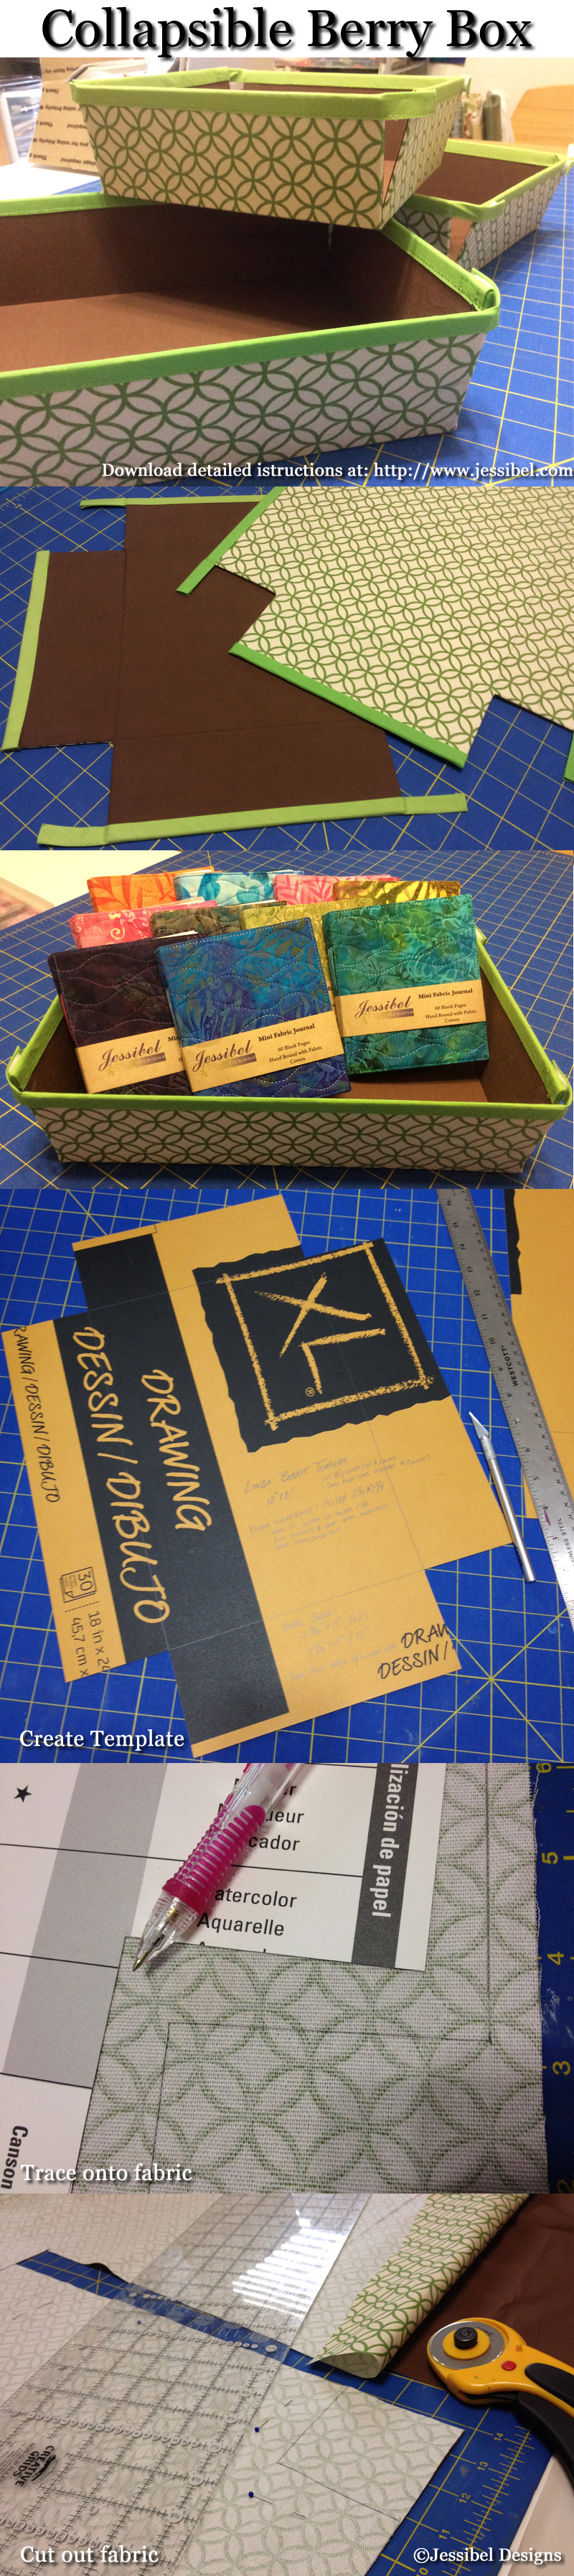 Collapsible Boxes by Jessibel Designs